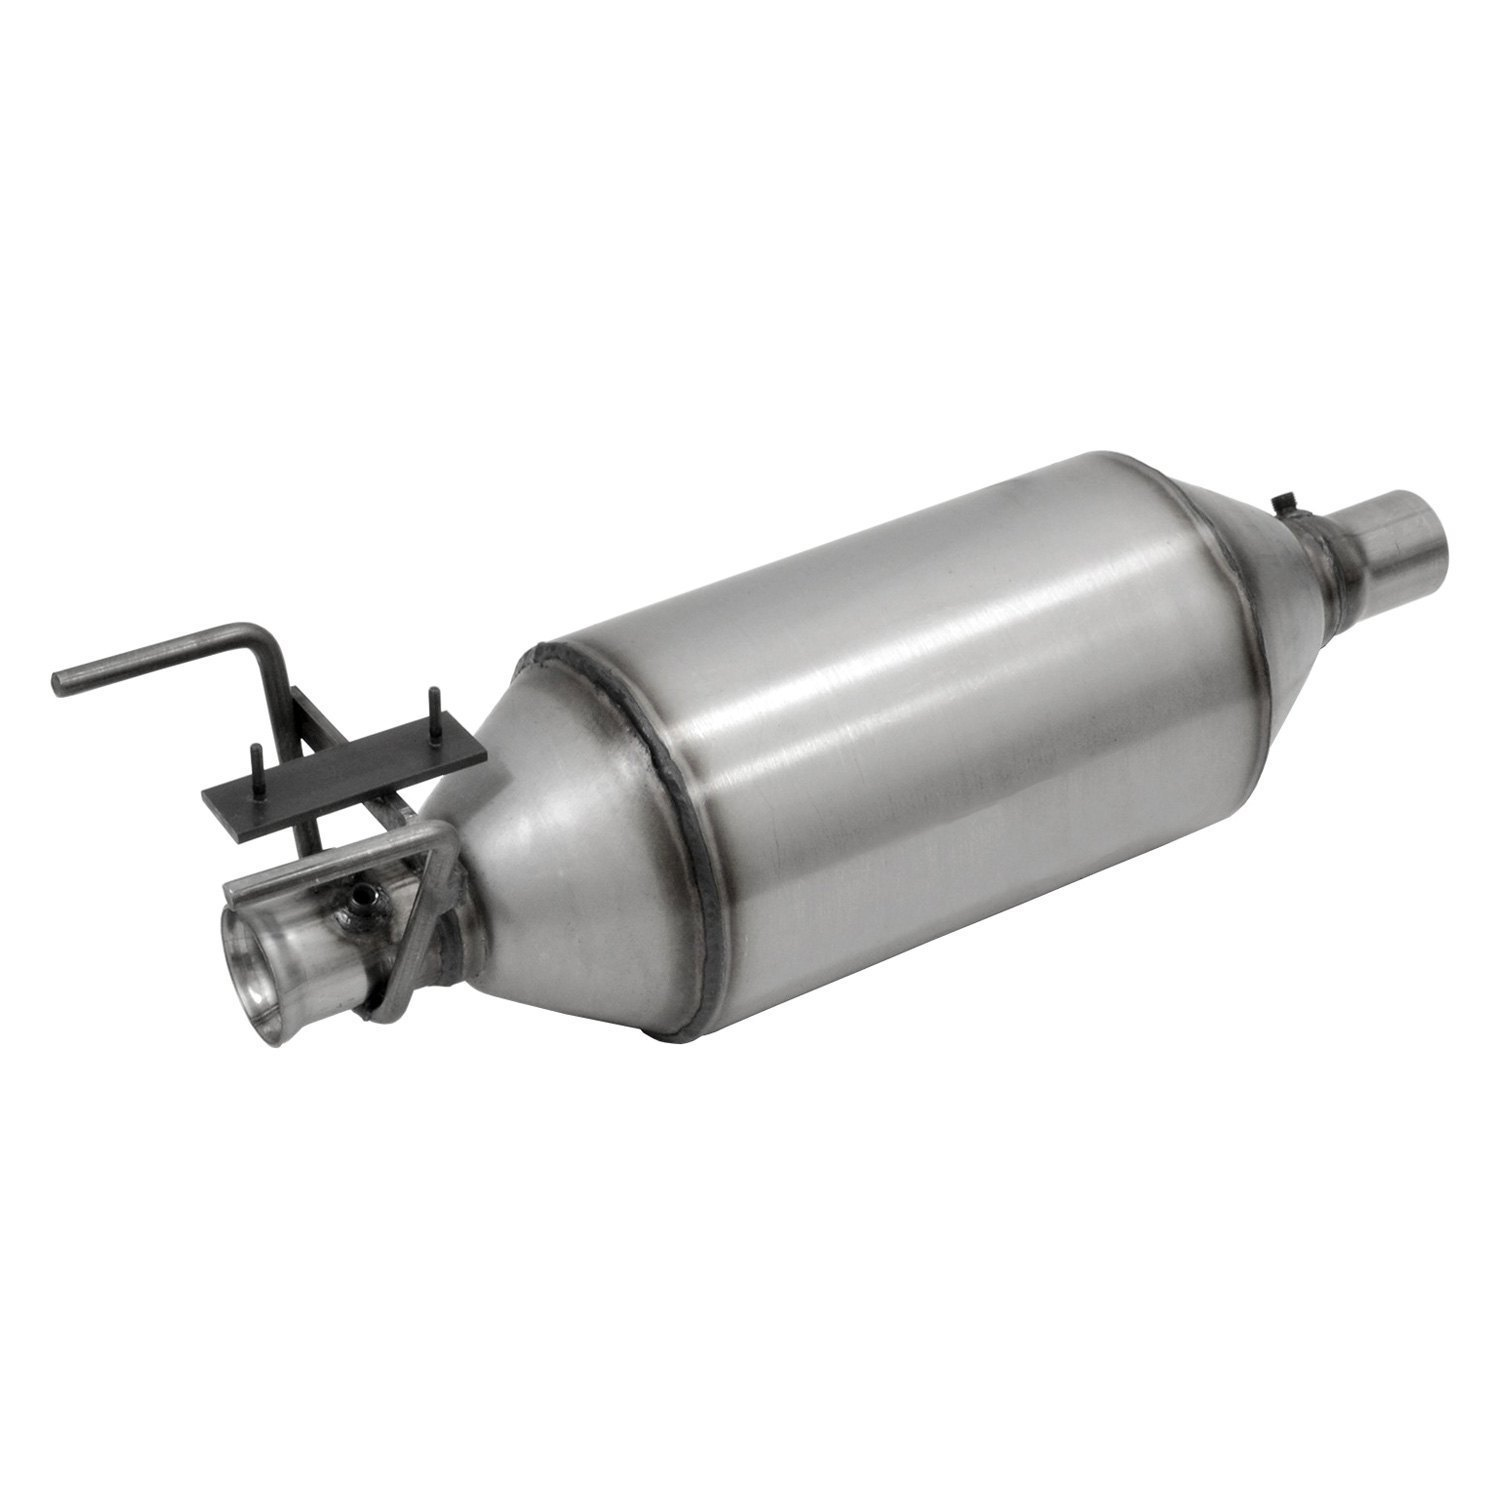 Direct Fit Diesel Particulate Filter